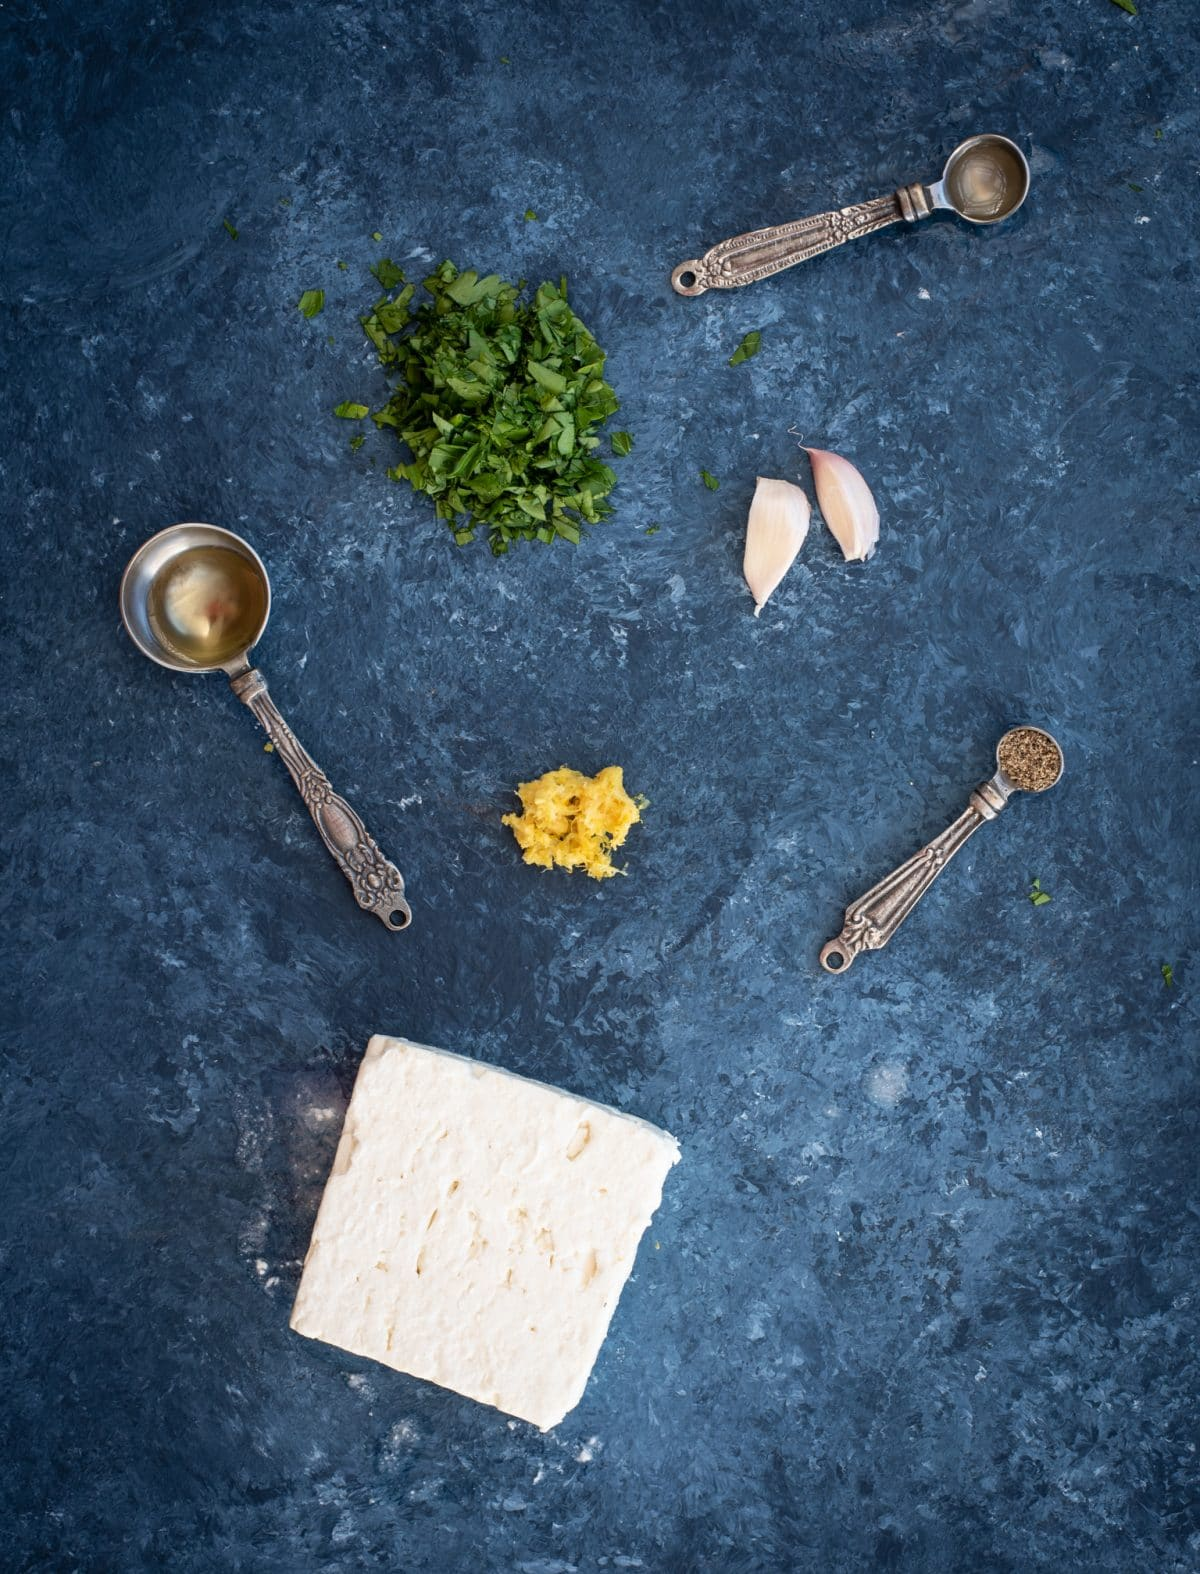 Picture of ingredients for whipped feta with herbs